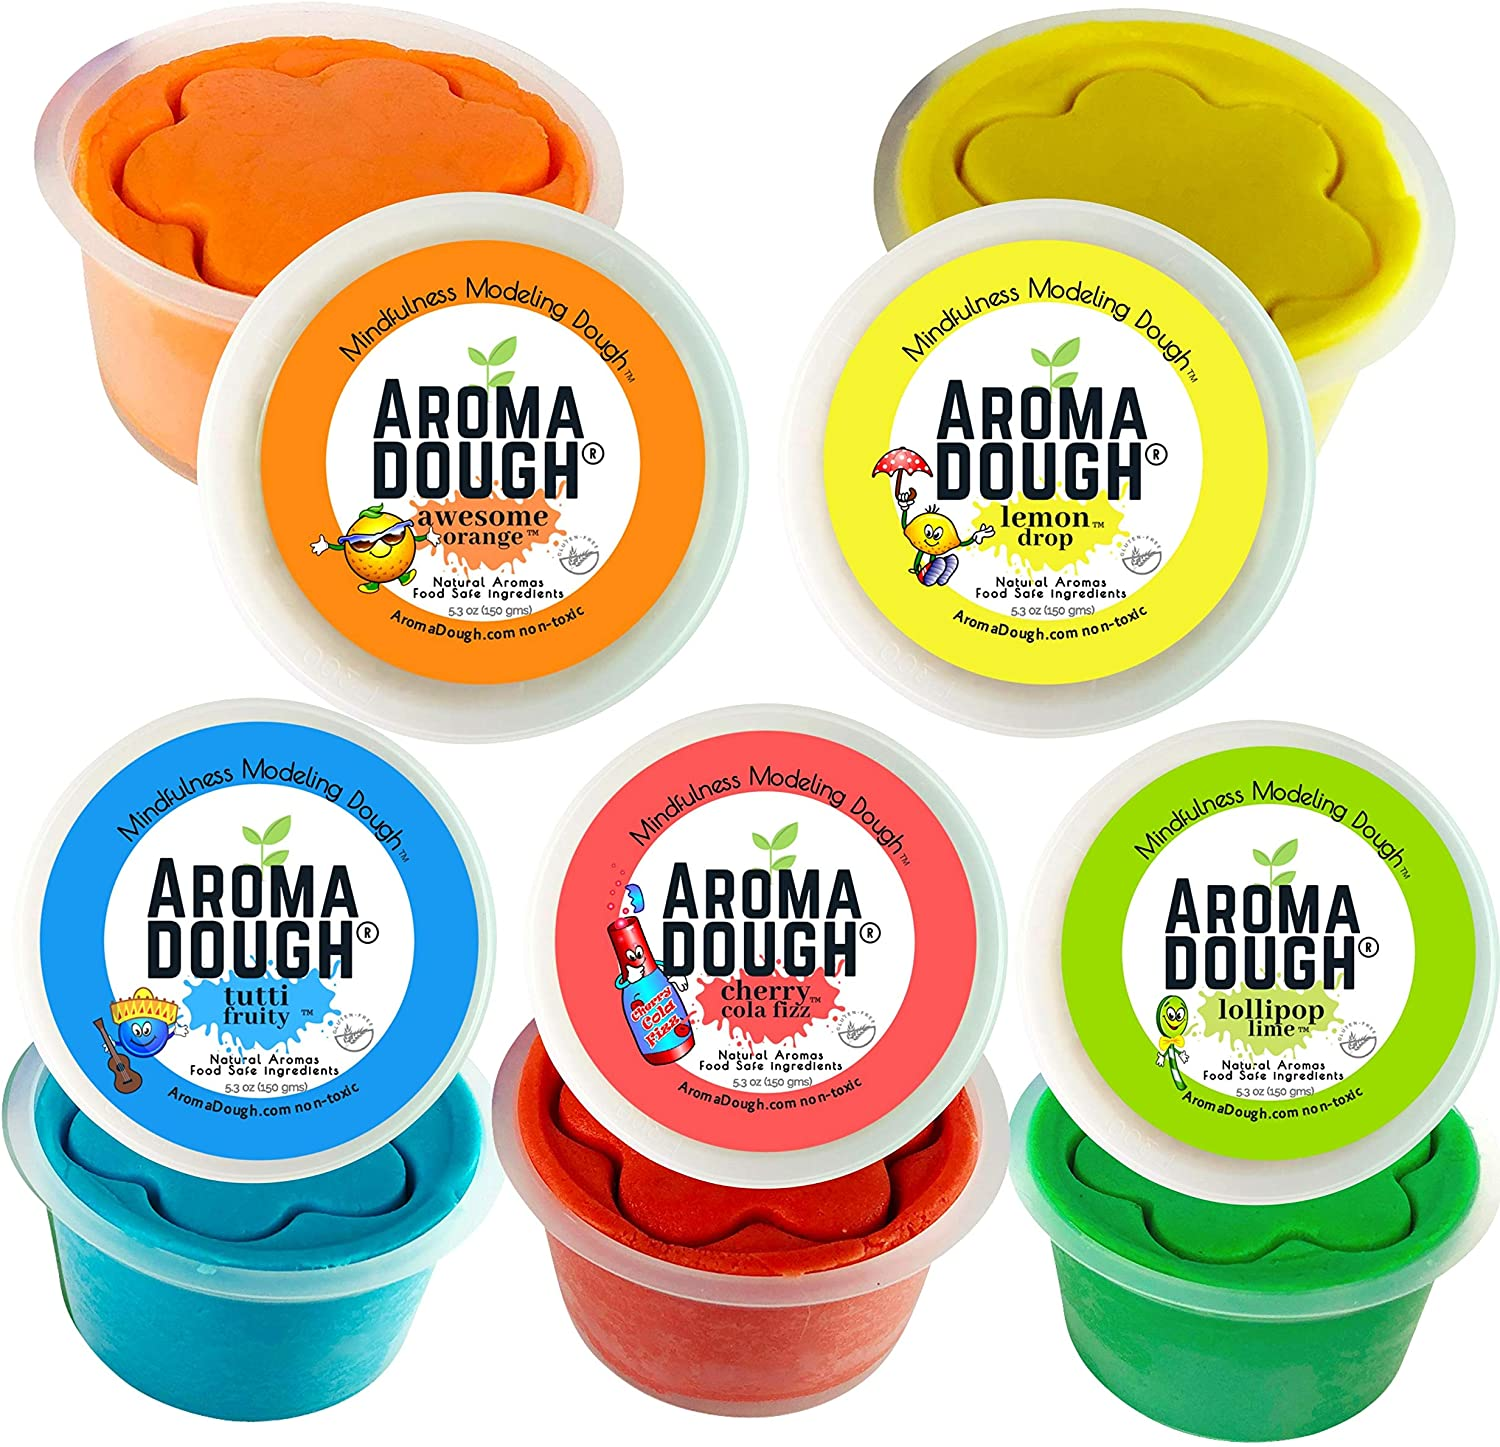 Sensory Play Smart Doh Essential Oil Infused Non-Toxic Modelling Dough